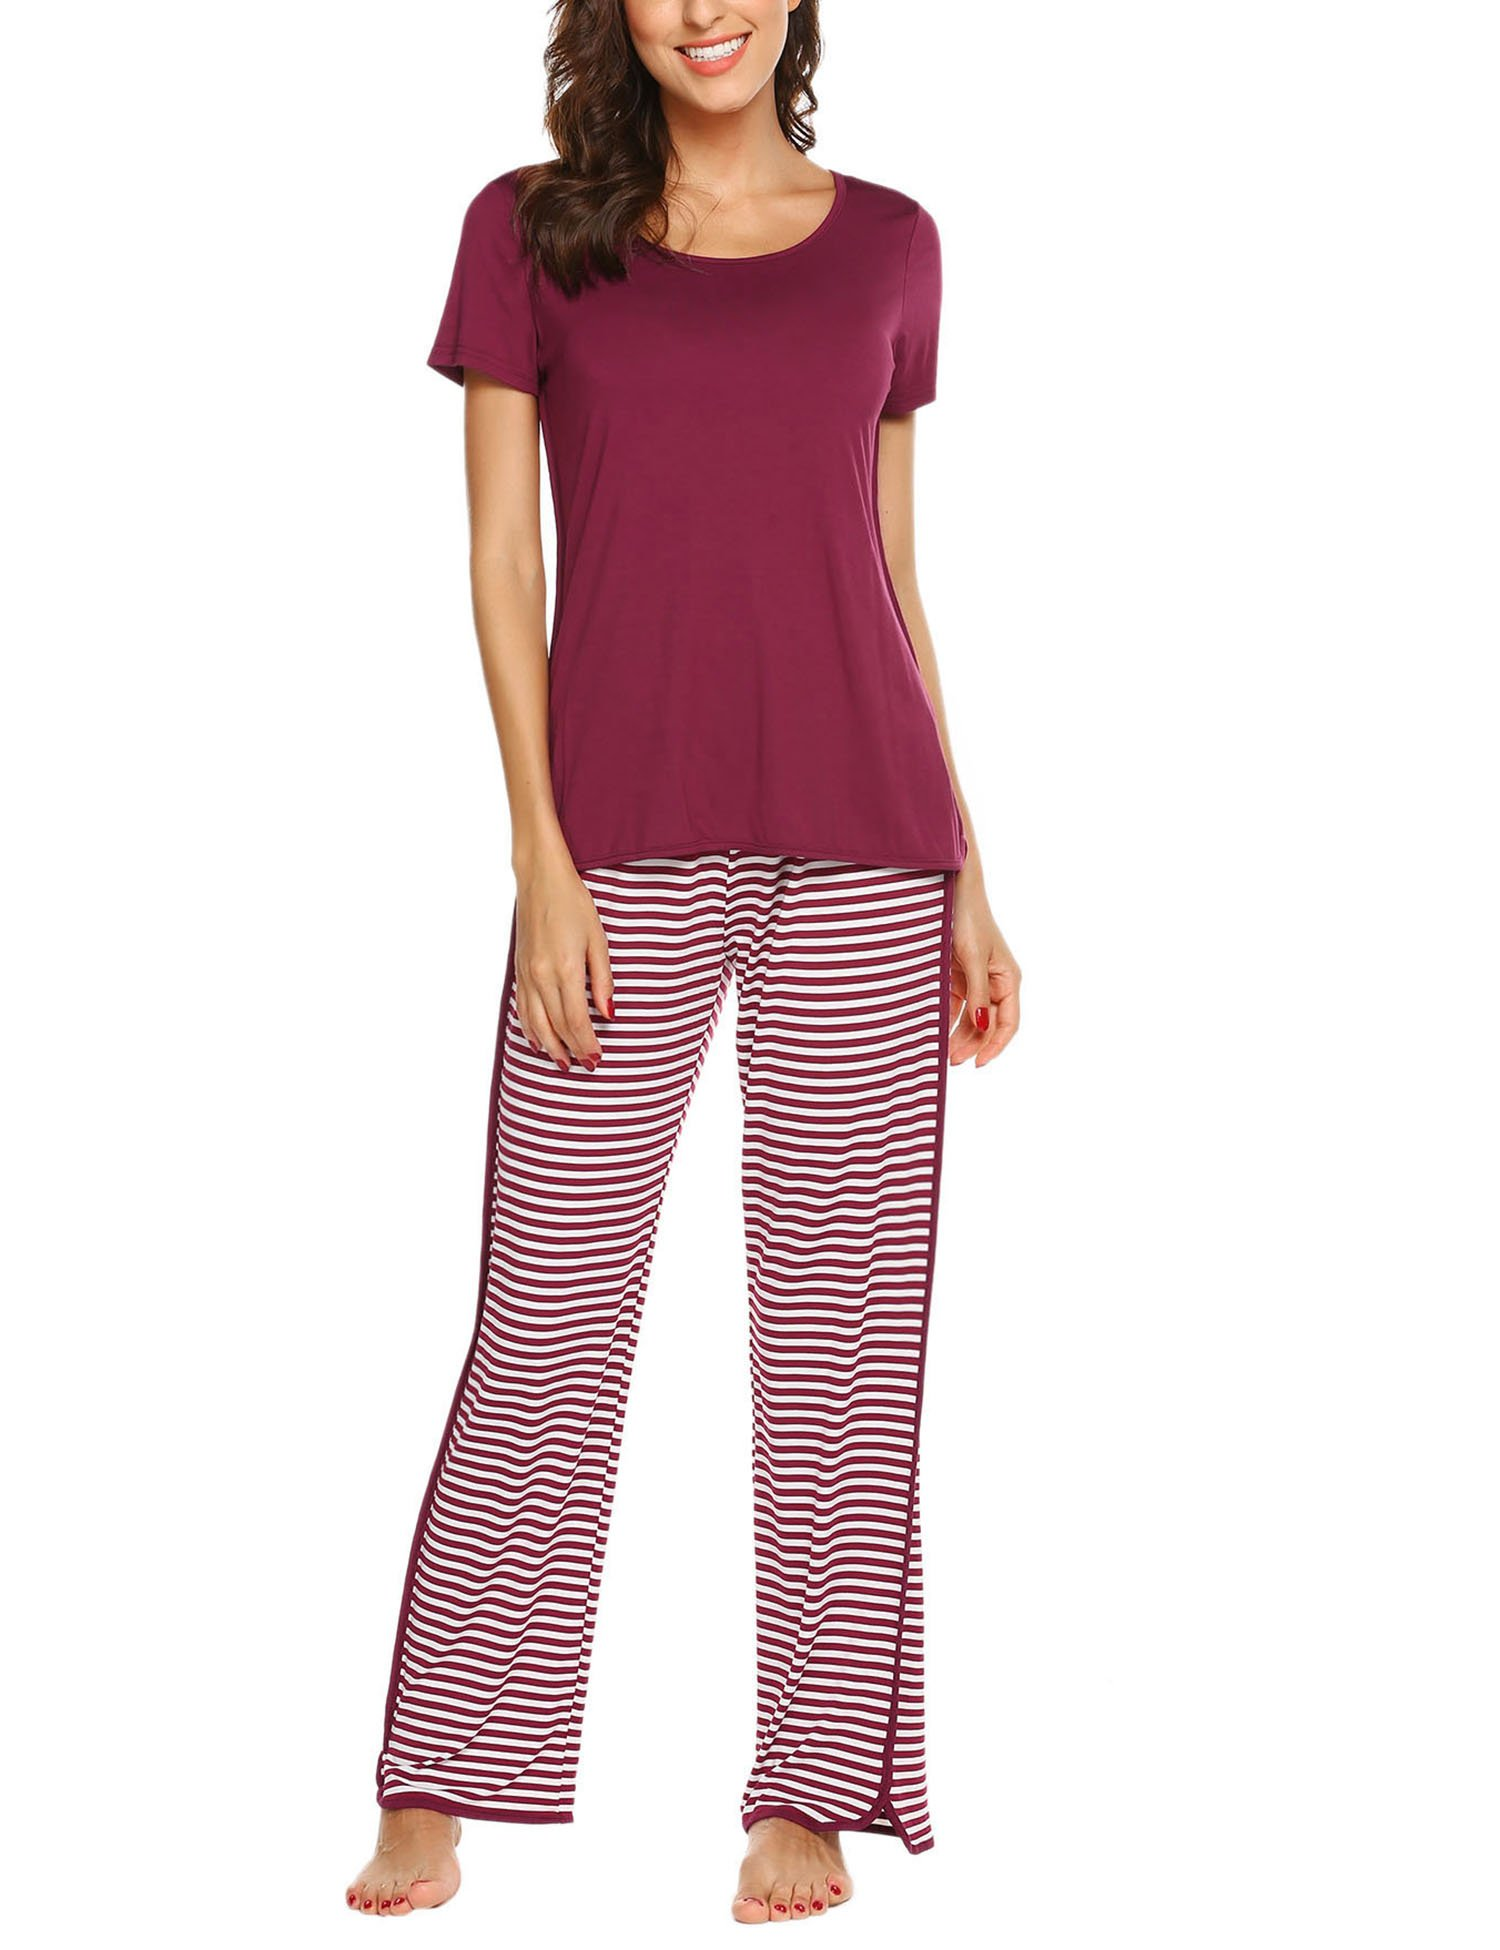 Ekouaer Pajama Set Striped Top & Pants Loose Fit Loungewear Round Neck Pjs for Women